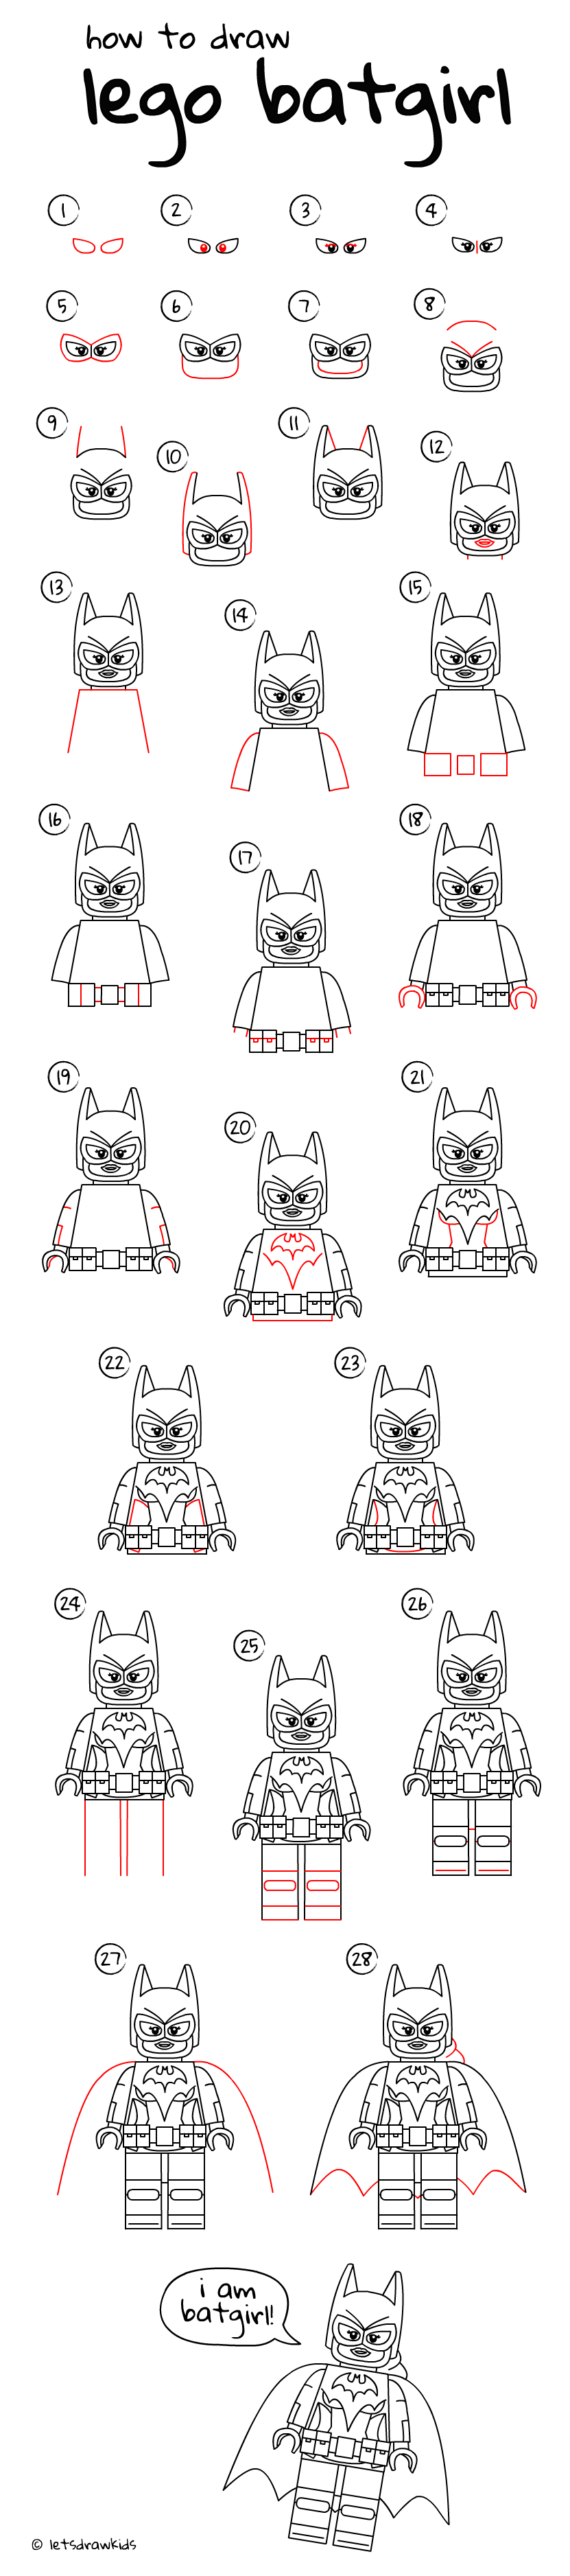 How To Draw Lego Batgirl Easy Drawing, Step By Step, Perfect For Kids